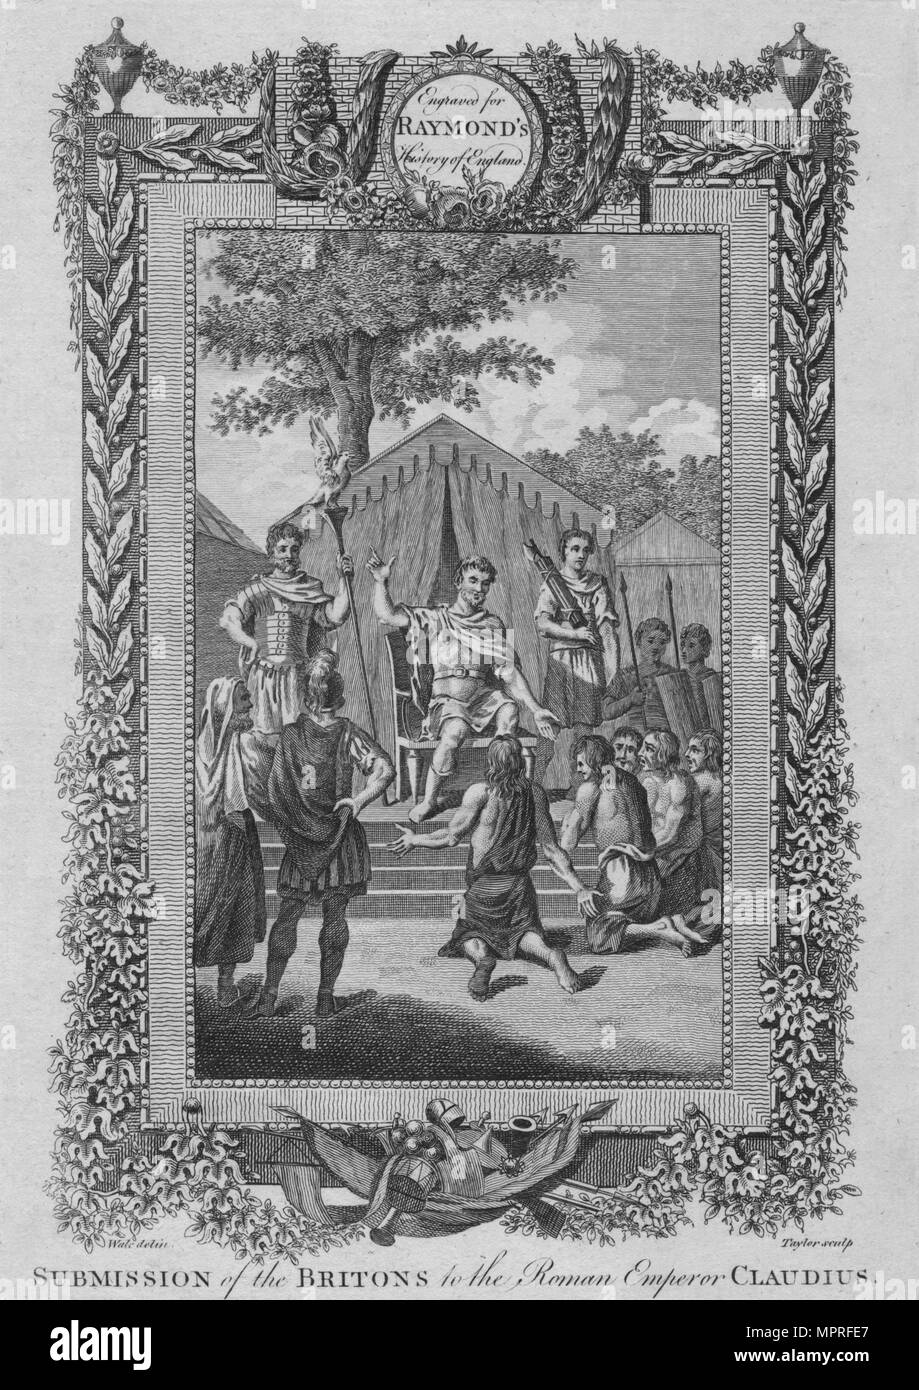 'Submission of the Britons to the Roman Emperor Claudius', c1787. Artist: Unknown. - Stock Image